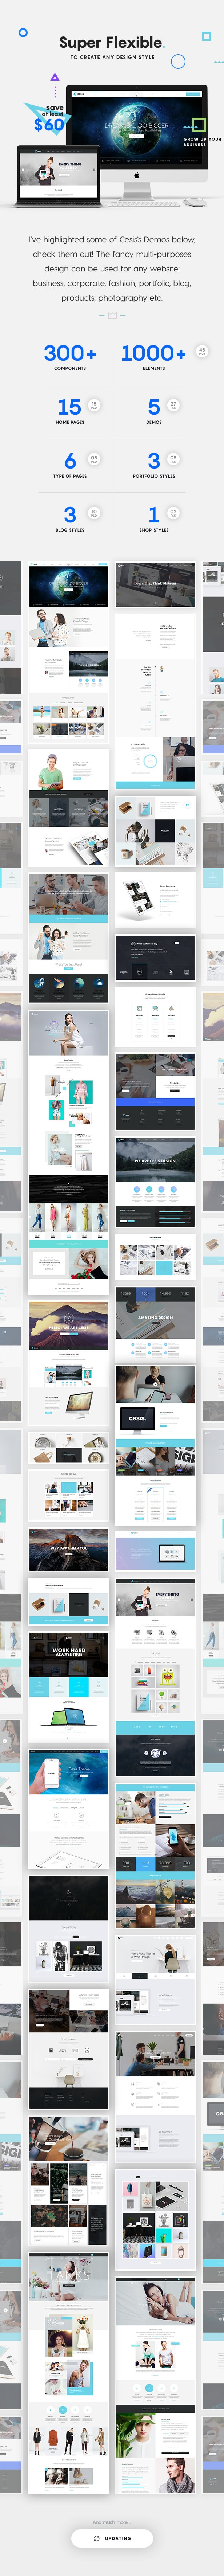 Cesis | The Ultimate Multi-Purpose PSD Template of 2016